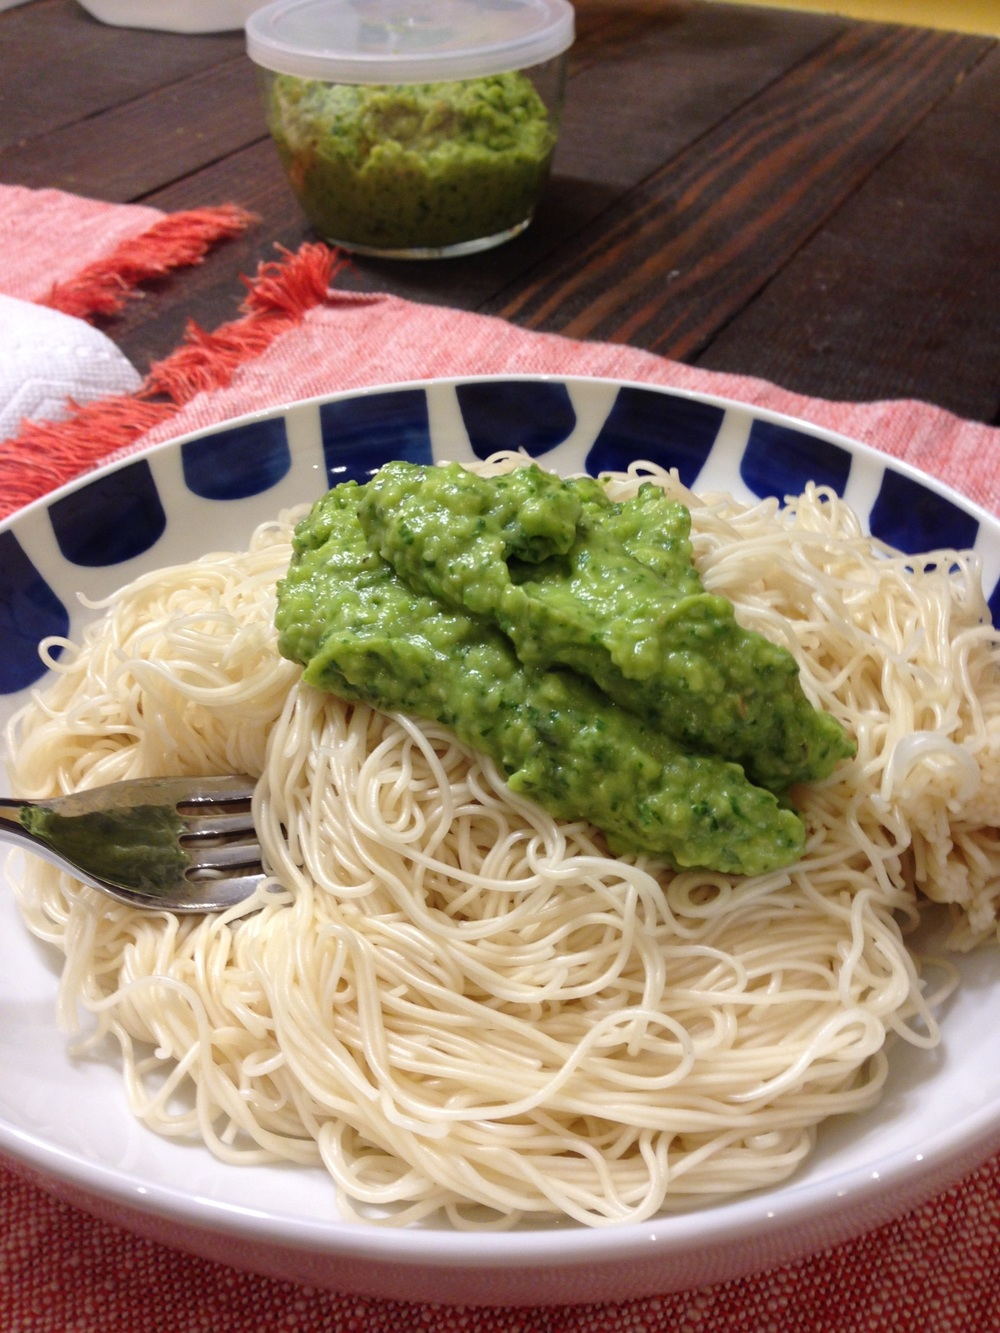 Example of a lazy dish made in the Drewsia kitchen by Andrew. Avocado/Pesto Cream Sauce on  Organic Ramen Noodles